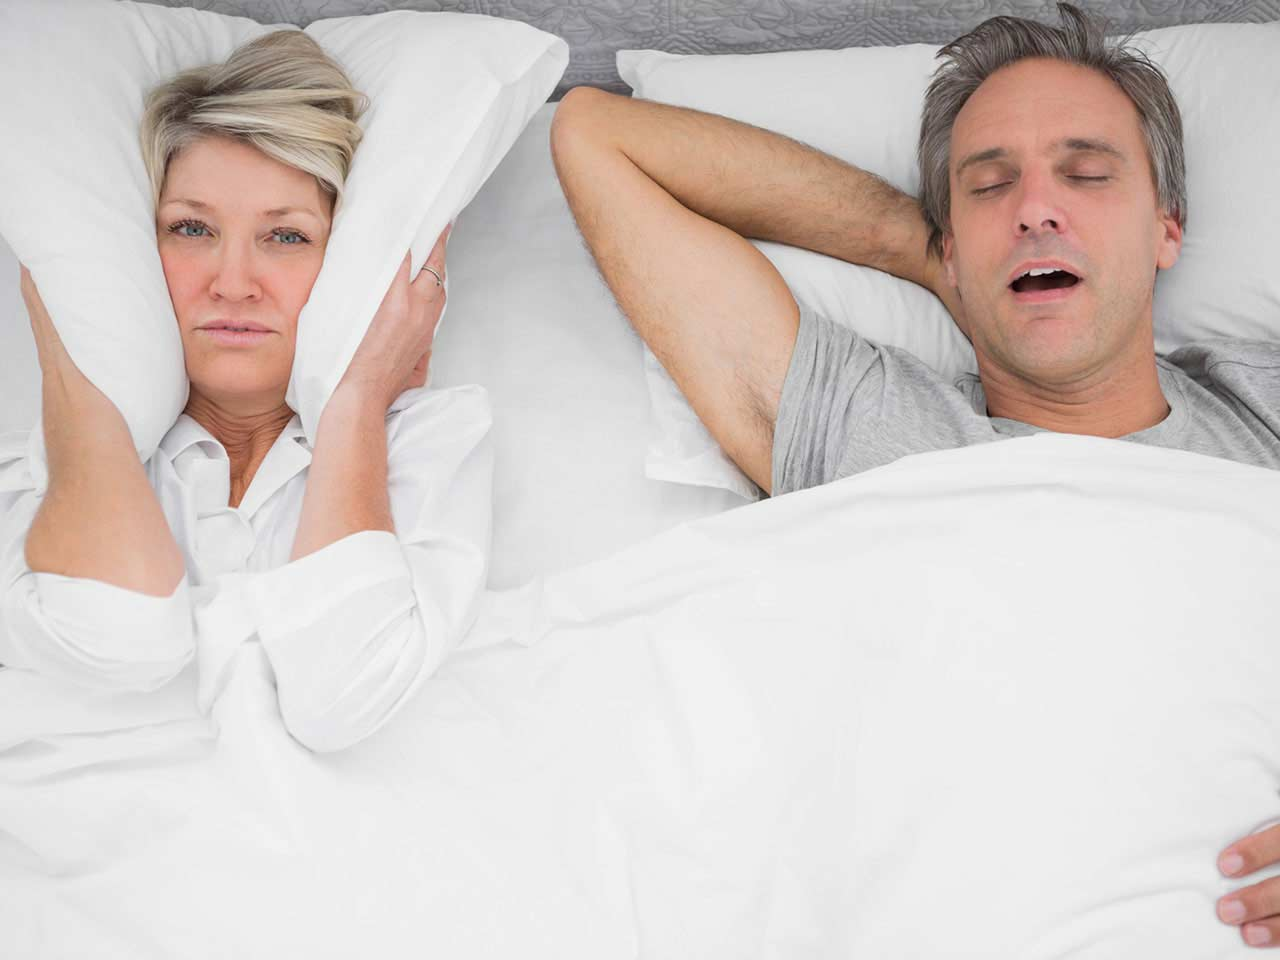 Mature couple in bed with the man snoring